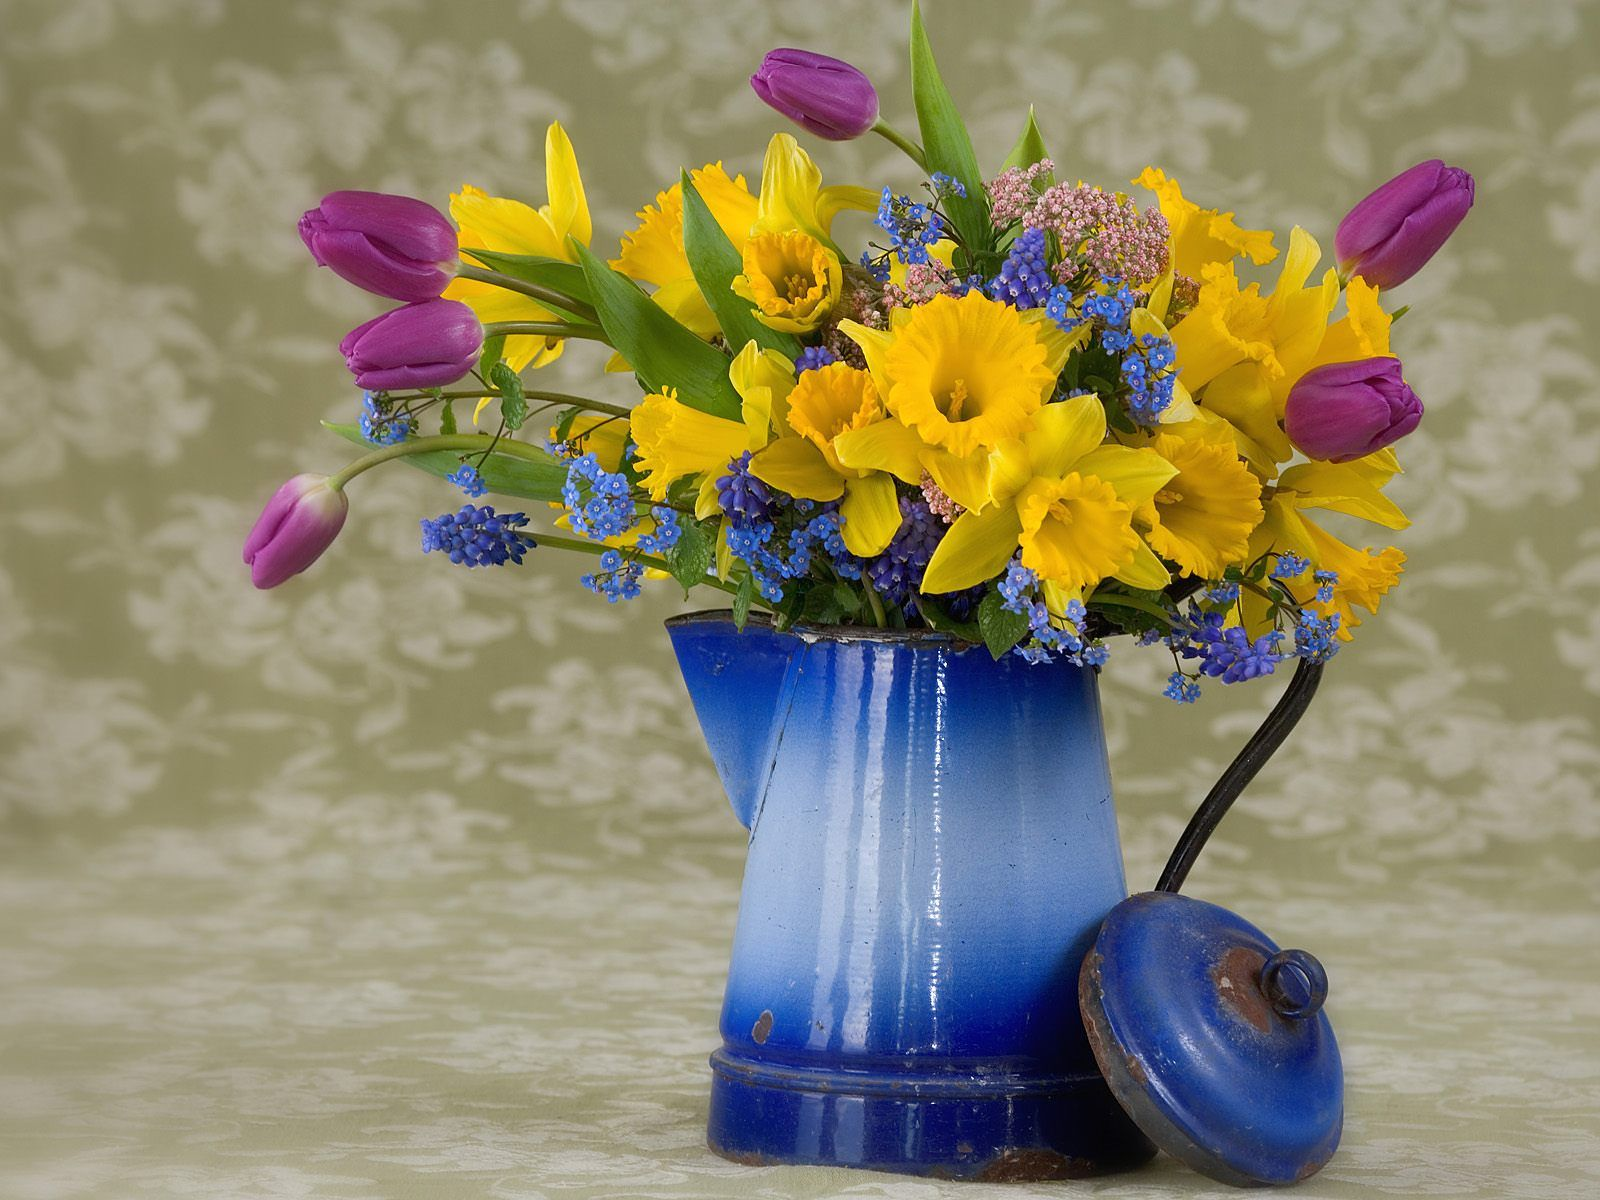 Flower arrangements flowers wallpapers download free spring flower arrangements flowers wallpapers download free spring flower arrangement mightylinksfo